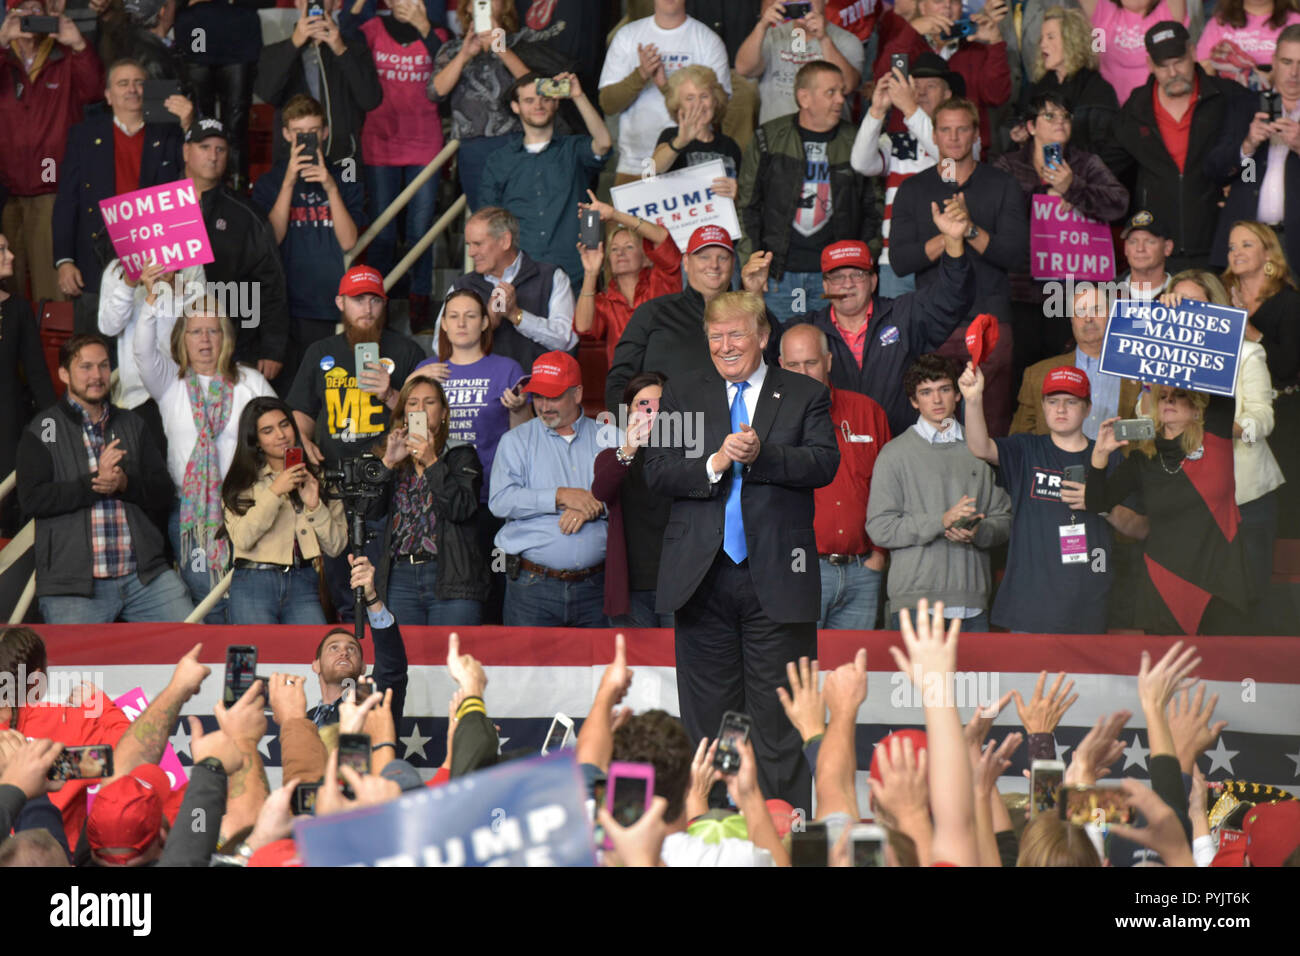 Charlotte, NC, USA, USA.  26 Oct 2018. US President Trump attends a MAGA Rally to campaign for 9th District House Candidate, Mark Harris. Trump's supporters braved cold weather and hard rain, some arriving over a day early, to hear the president speak.  Photo Credit: Castle Light Images / Alamy Live News Stock Photo